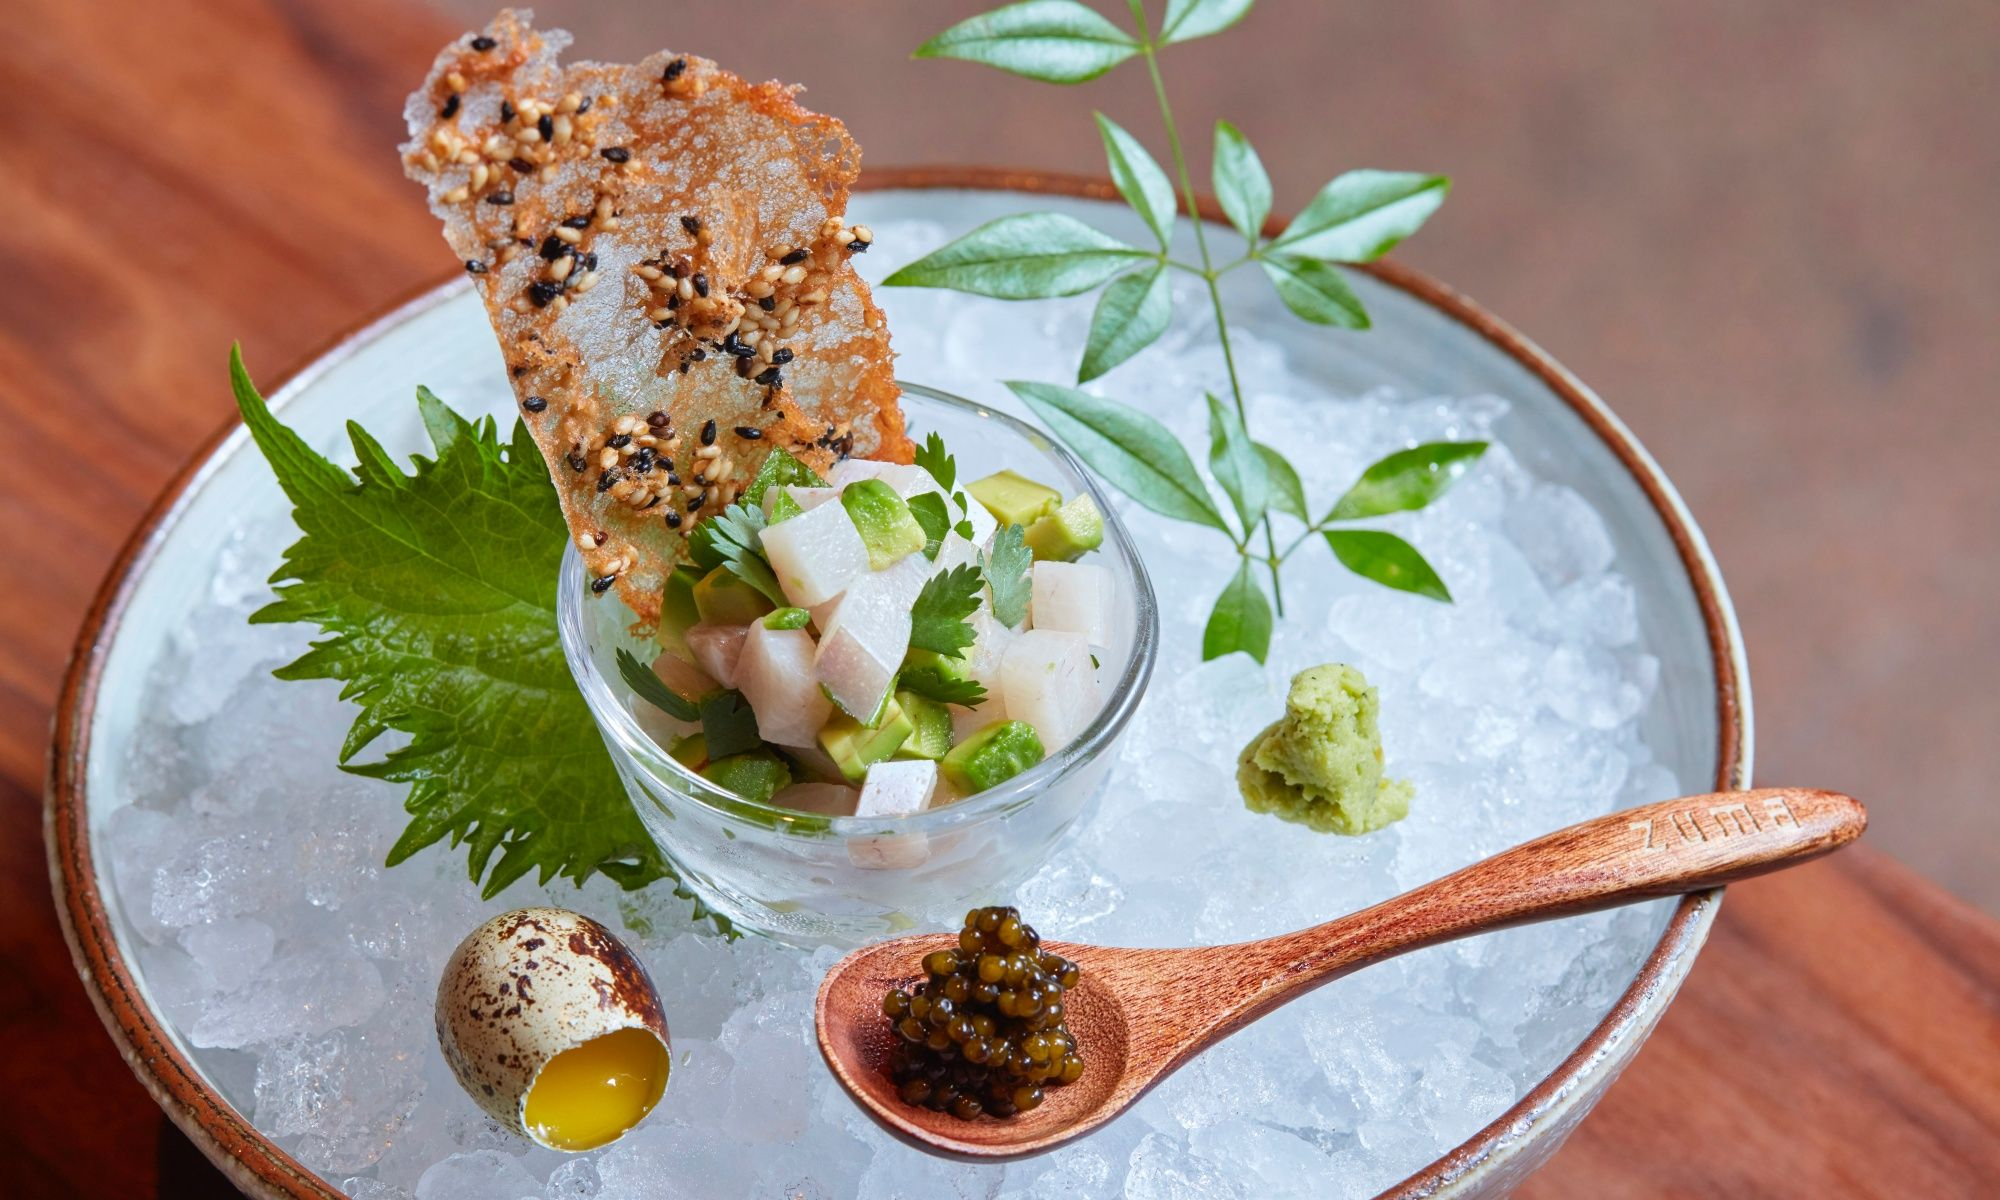 Zuma Launches Easter Daikoku Tasting Menu